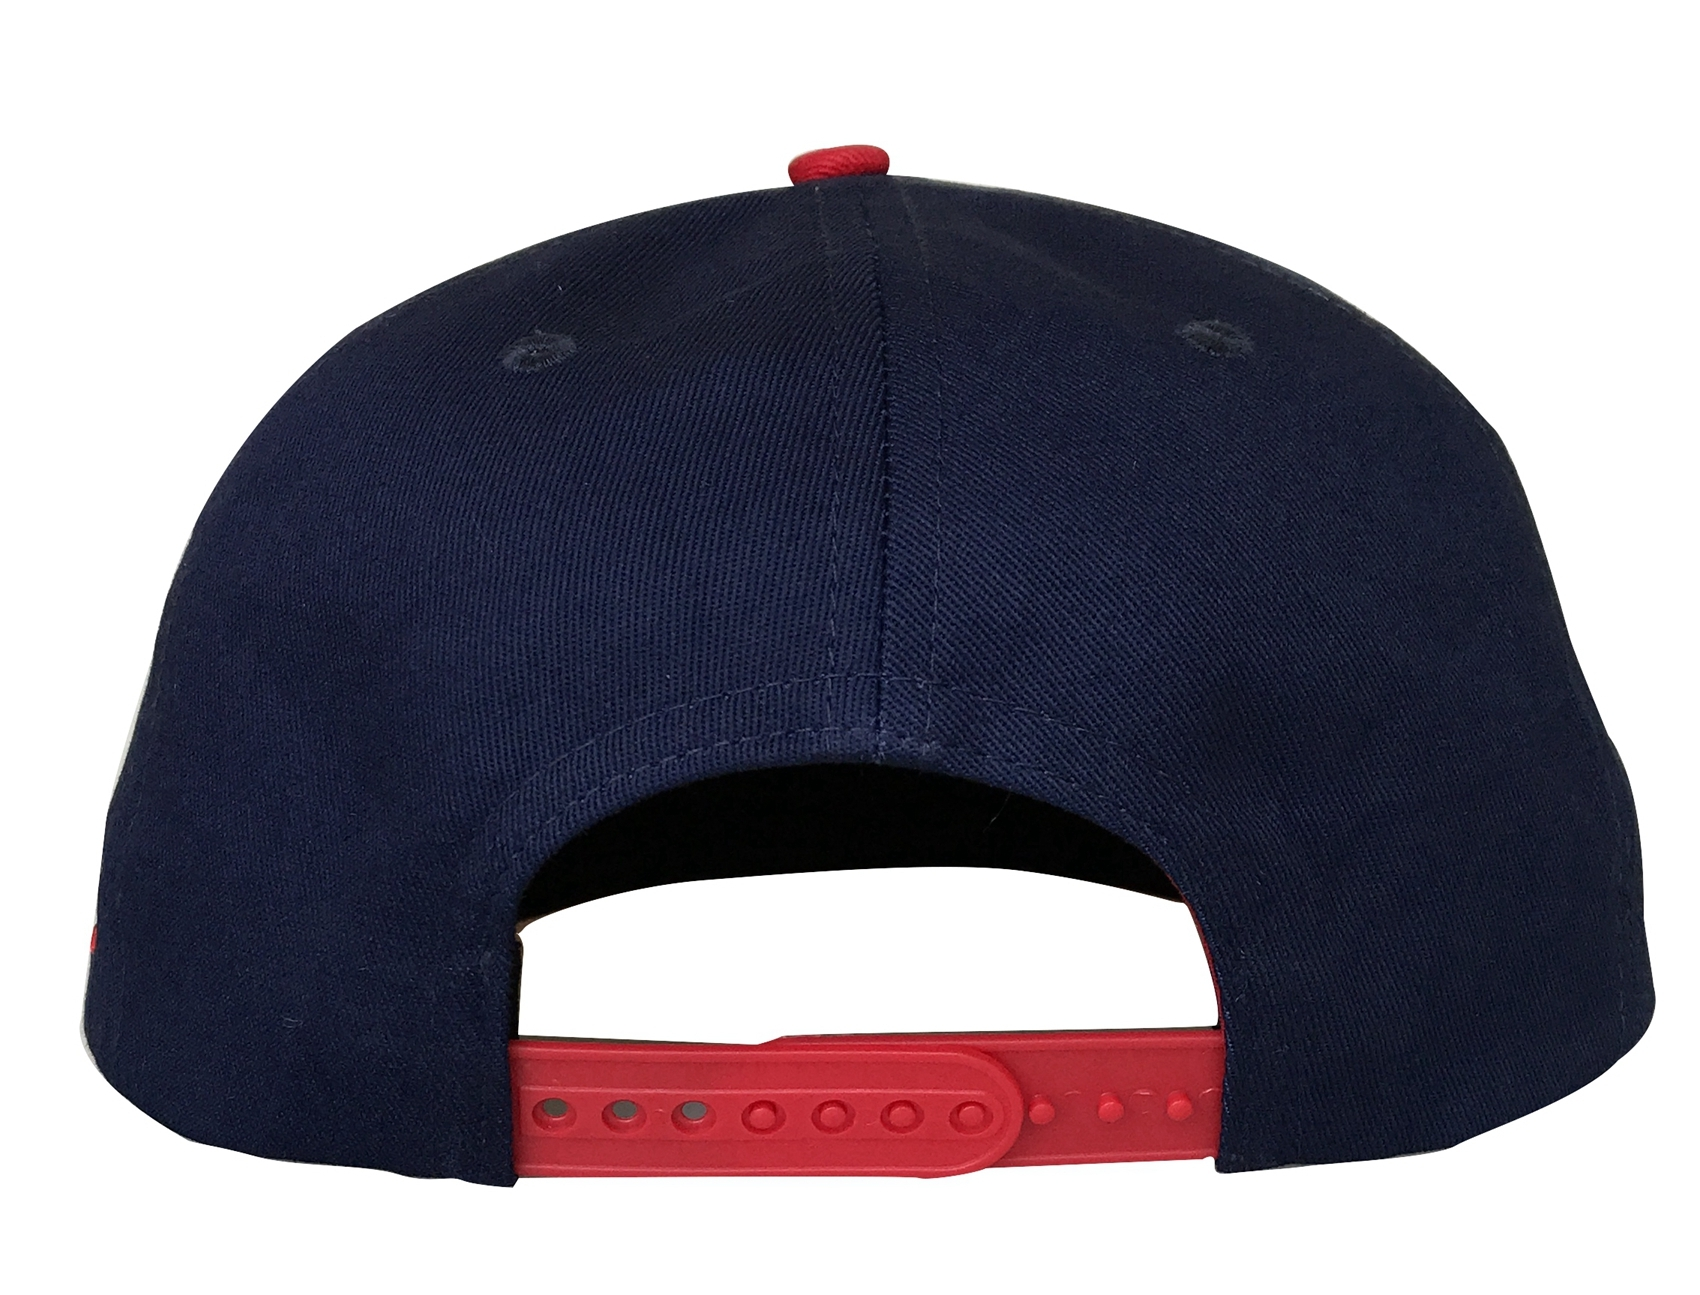 Custom 6 panel snapback cap with red and embroidery logo cap